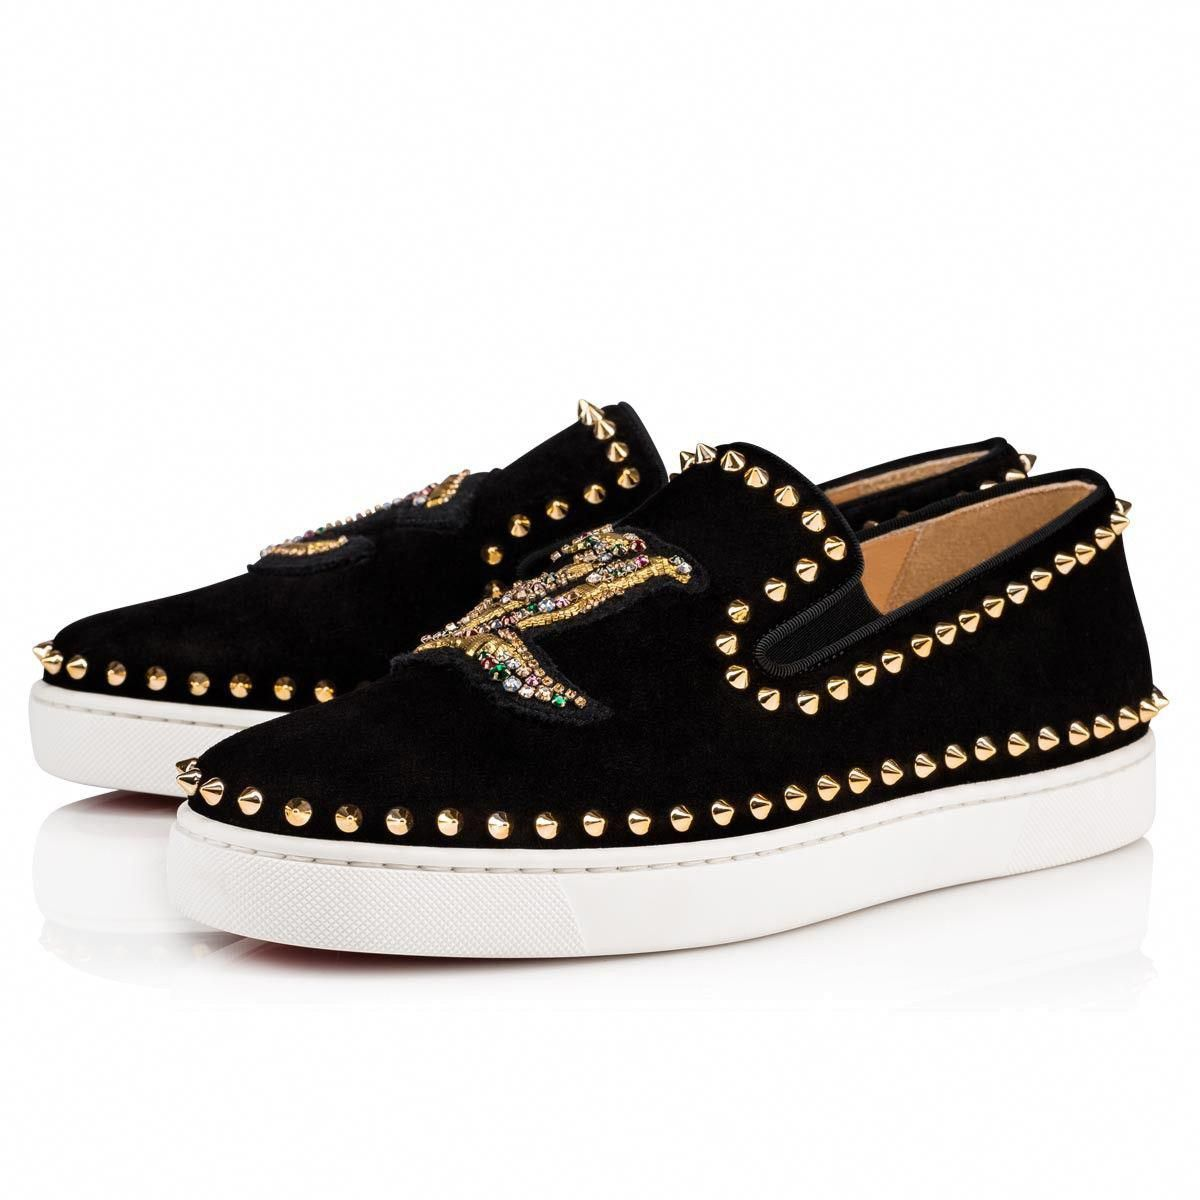 85abccb3d651 Pik Boat Cl Men s Flat Black Gold Suede - Men Shoes - Christian Louboutin   ChristianLouboutin